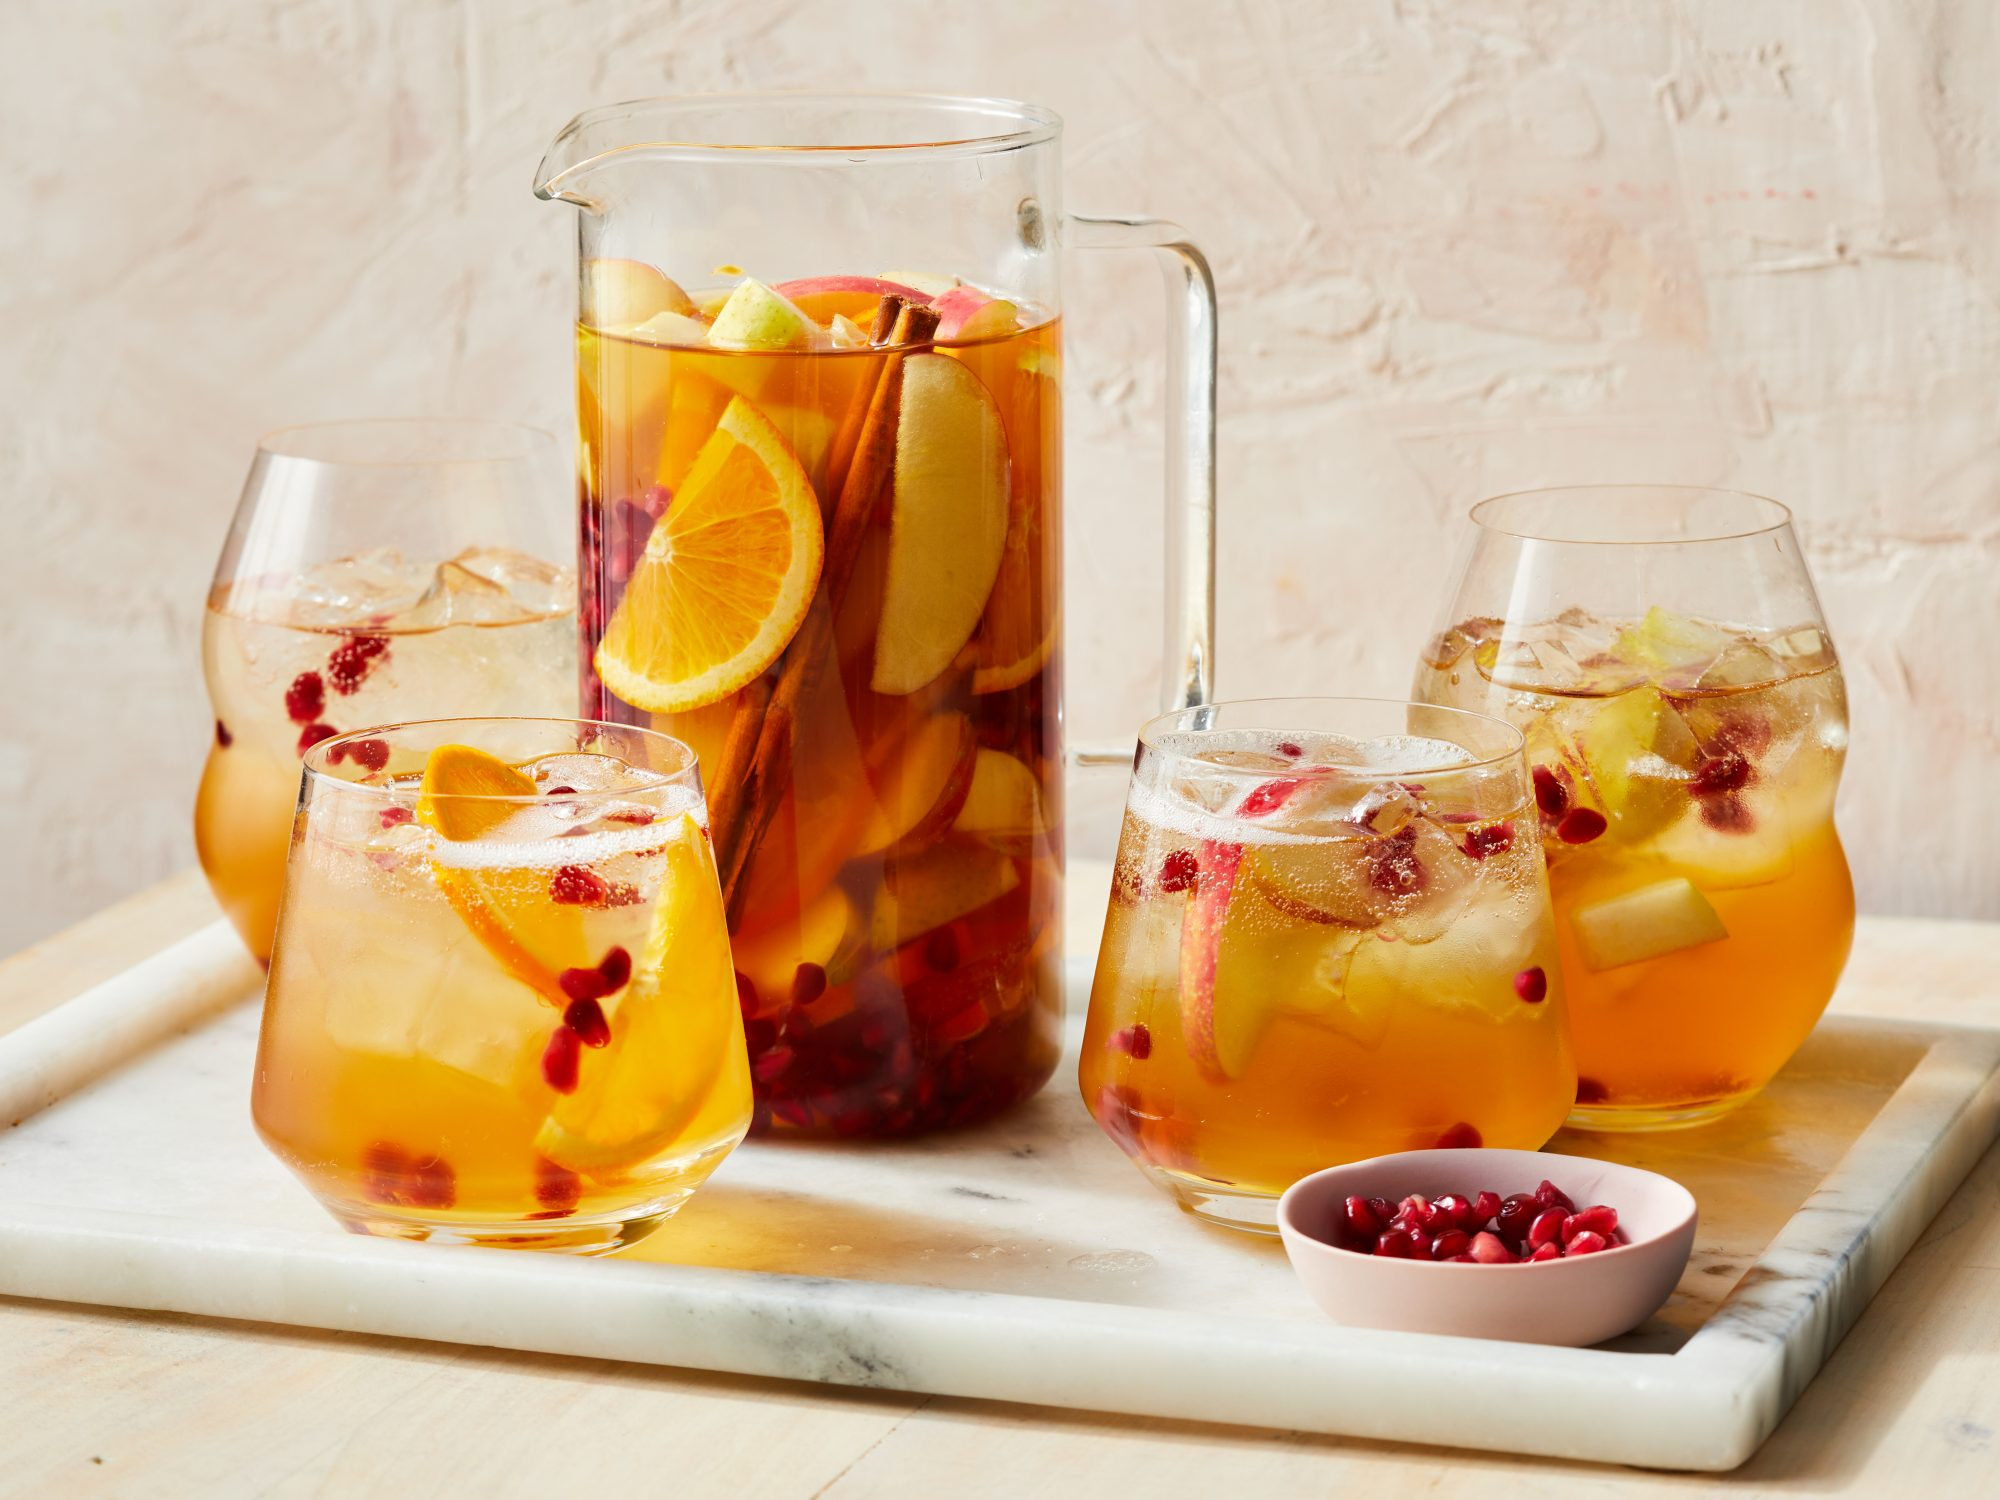 mr - Apple Cider Sangria Image